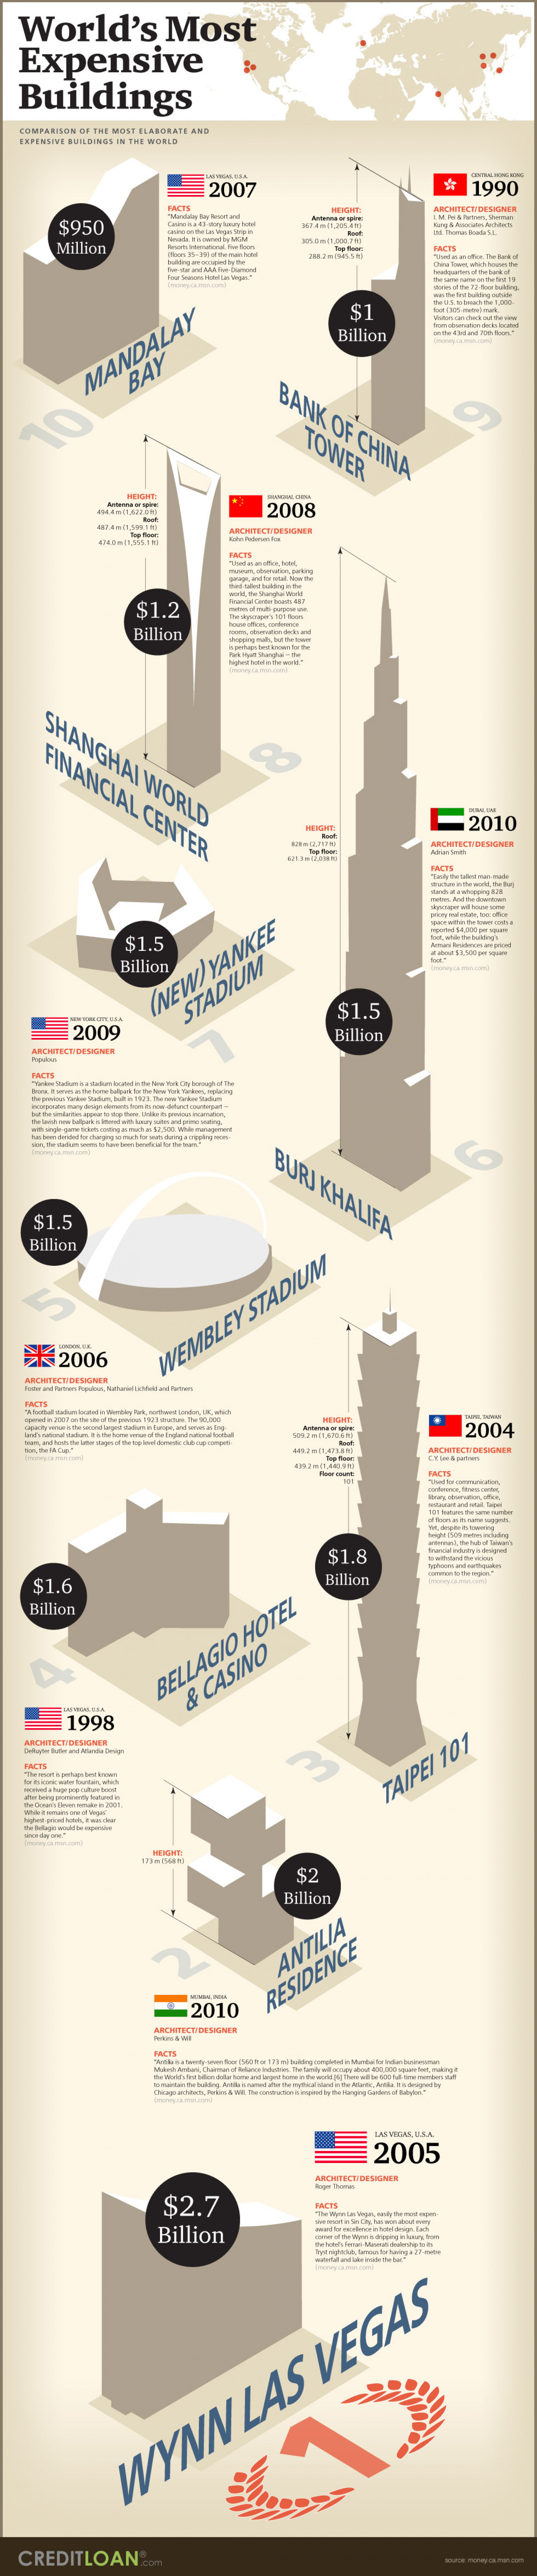 World's Most Expensive Buildings Infographic